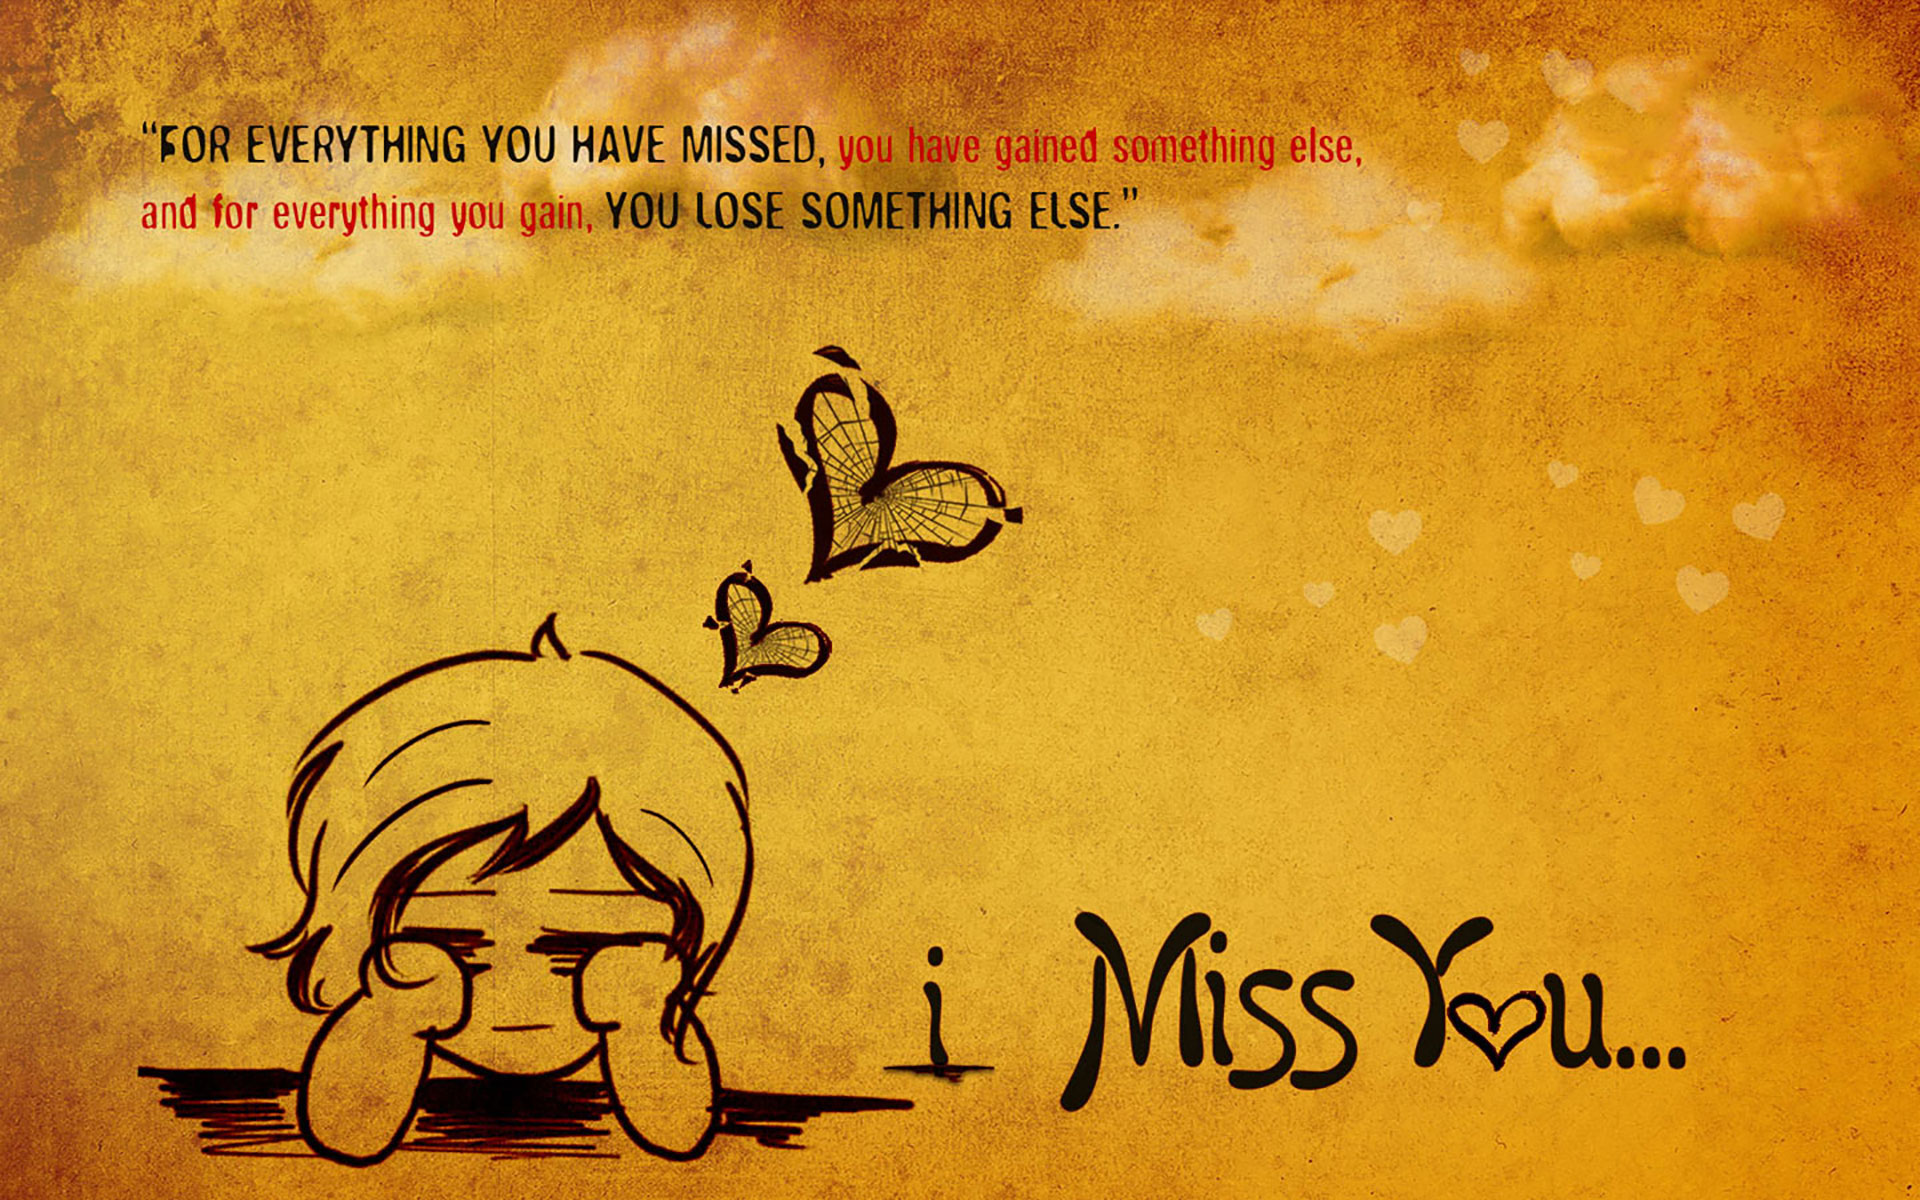 The Best And Latest Miss You Images On The Internet Free Download